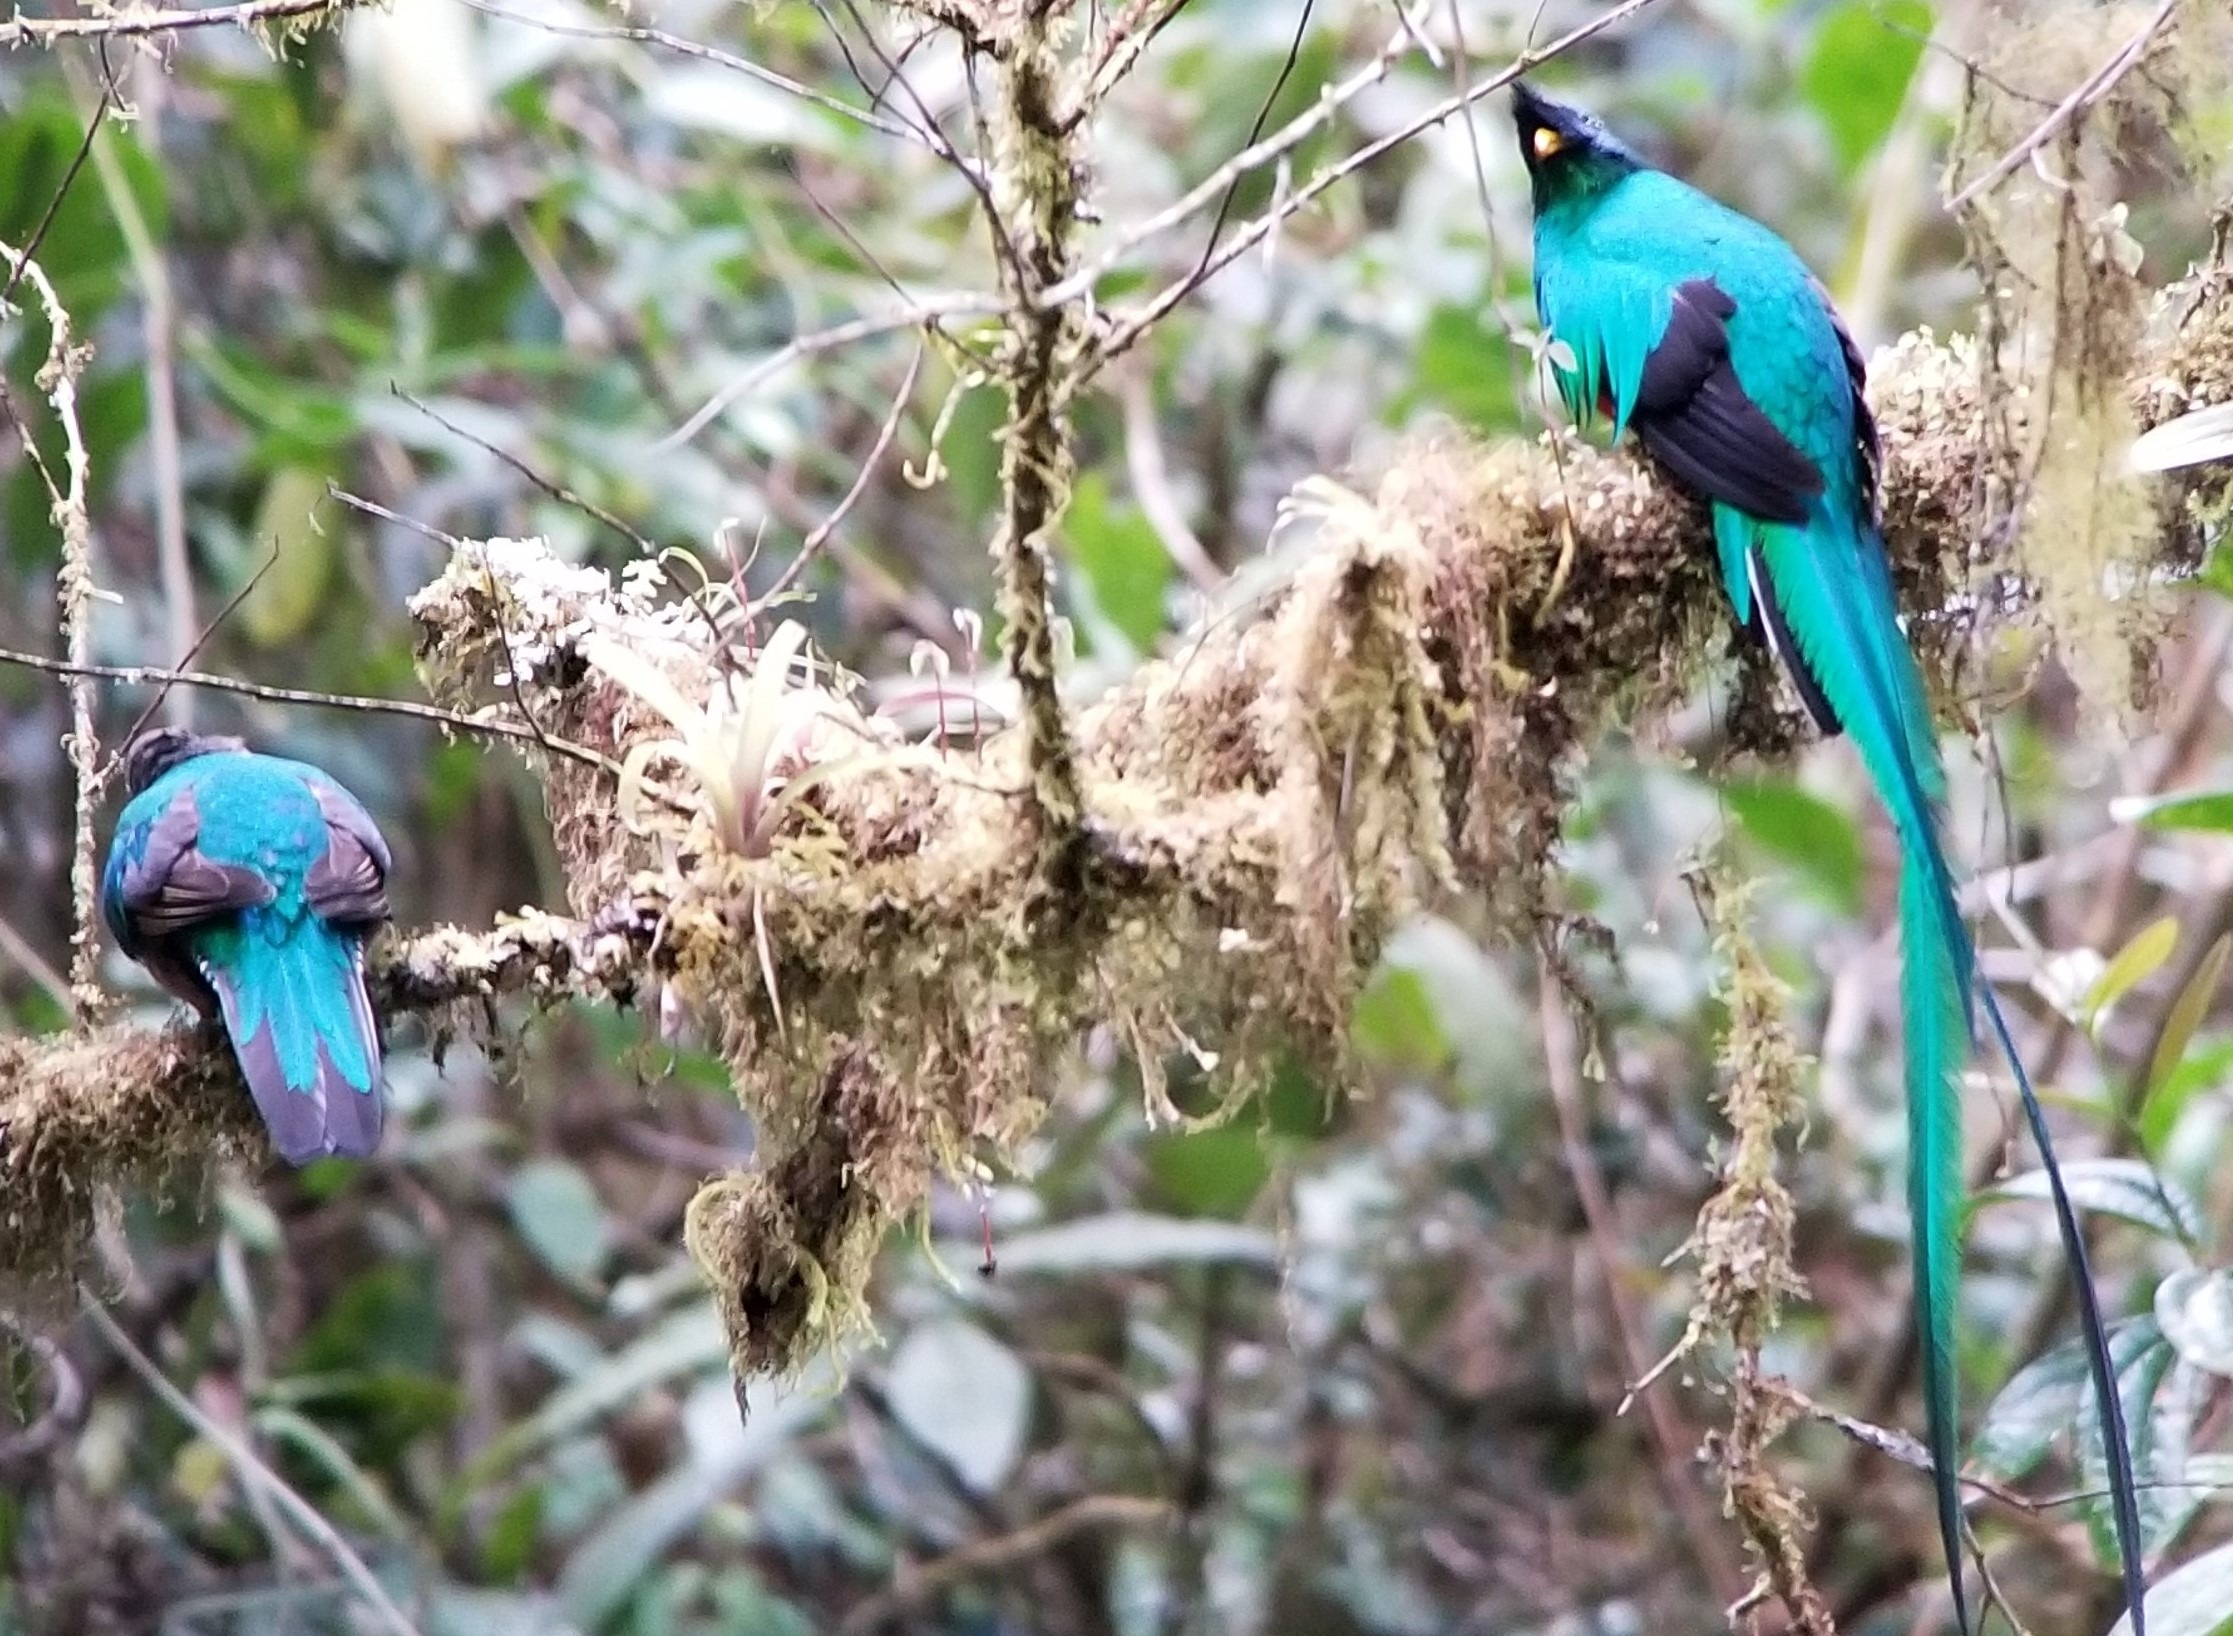 quetzels, one of the most beautiful birds